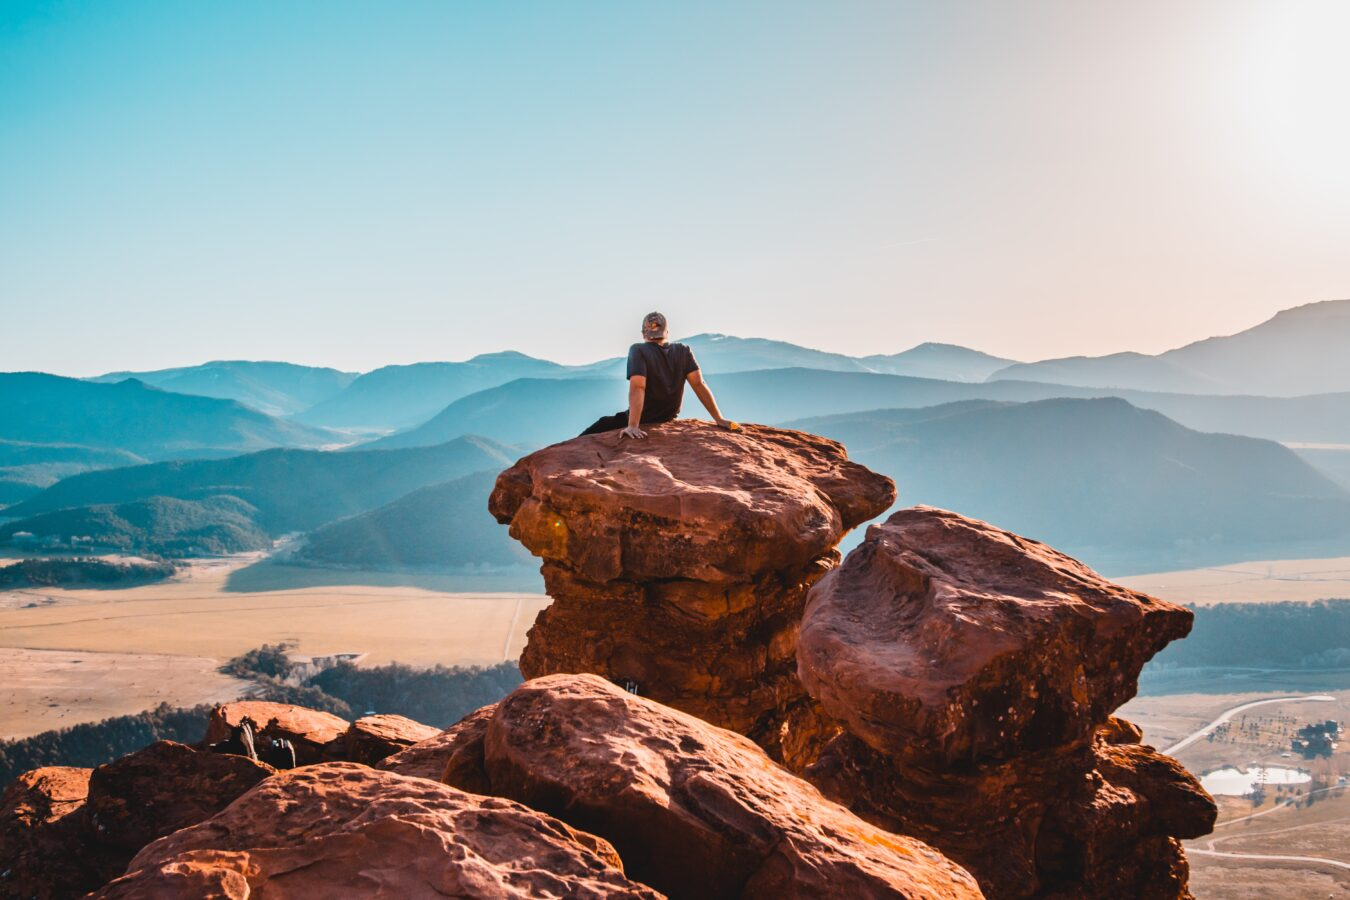 A person sits on the rocks thinking about improving CX with the help of hiking tips.